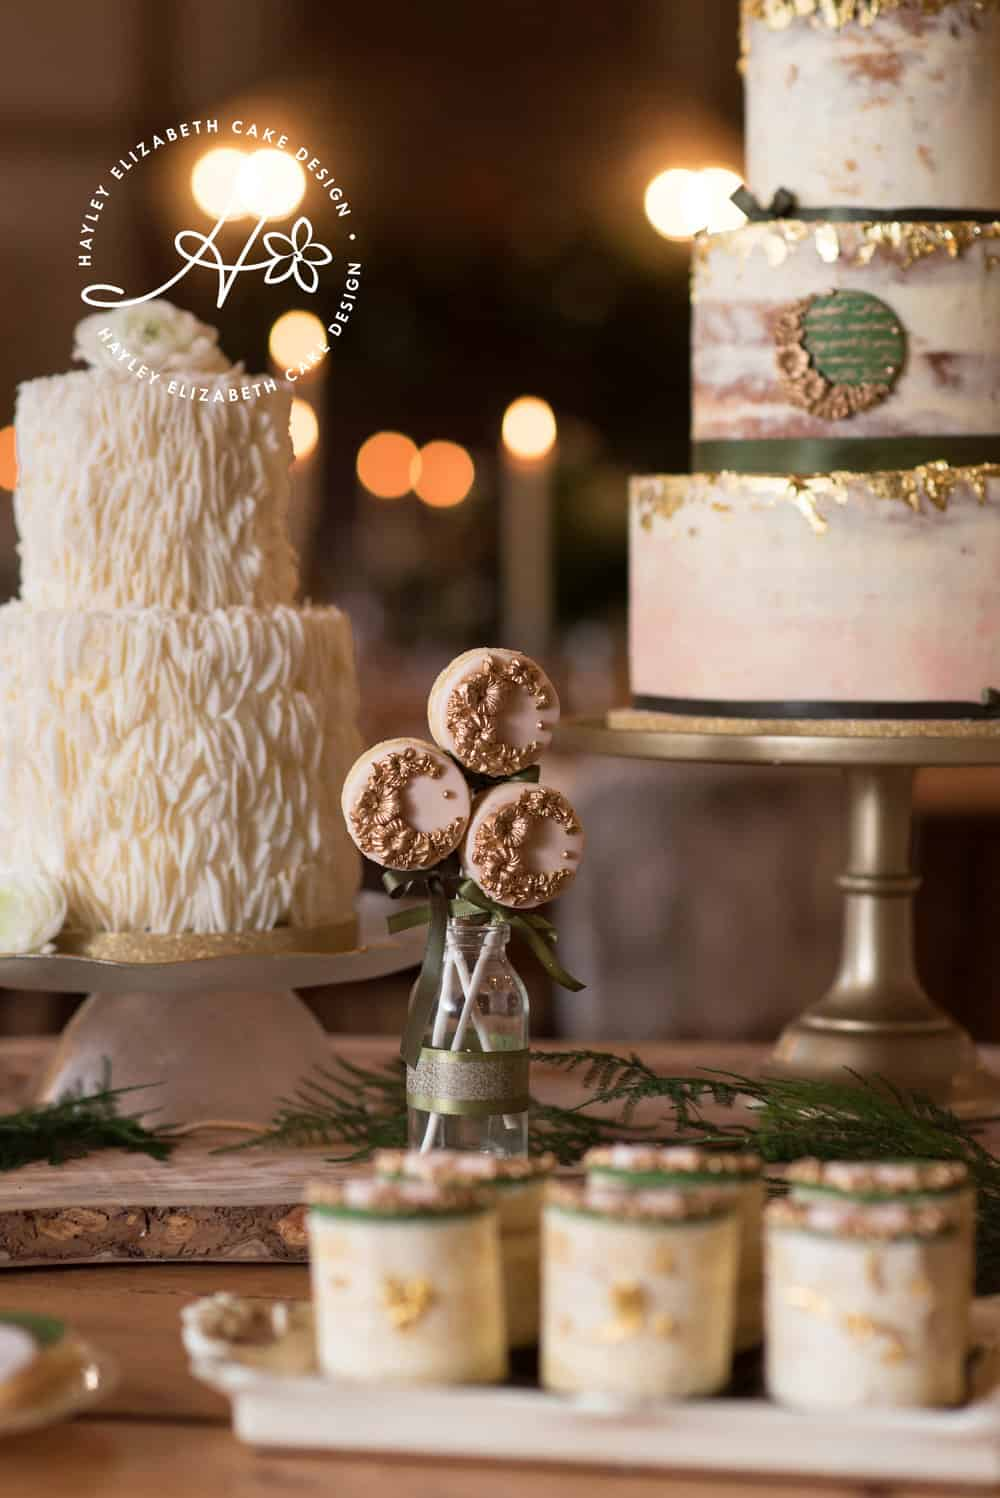 Christmas dessert table, luxury wedding cake, cake pops, iced biscuits, mini cakes, silver and white wedding cake, dessert bar, sugar flowers, wedding cake inspiration